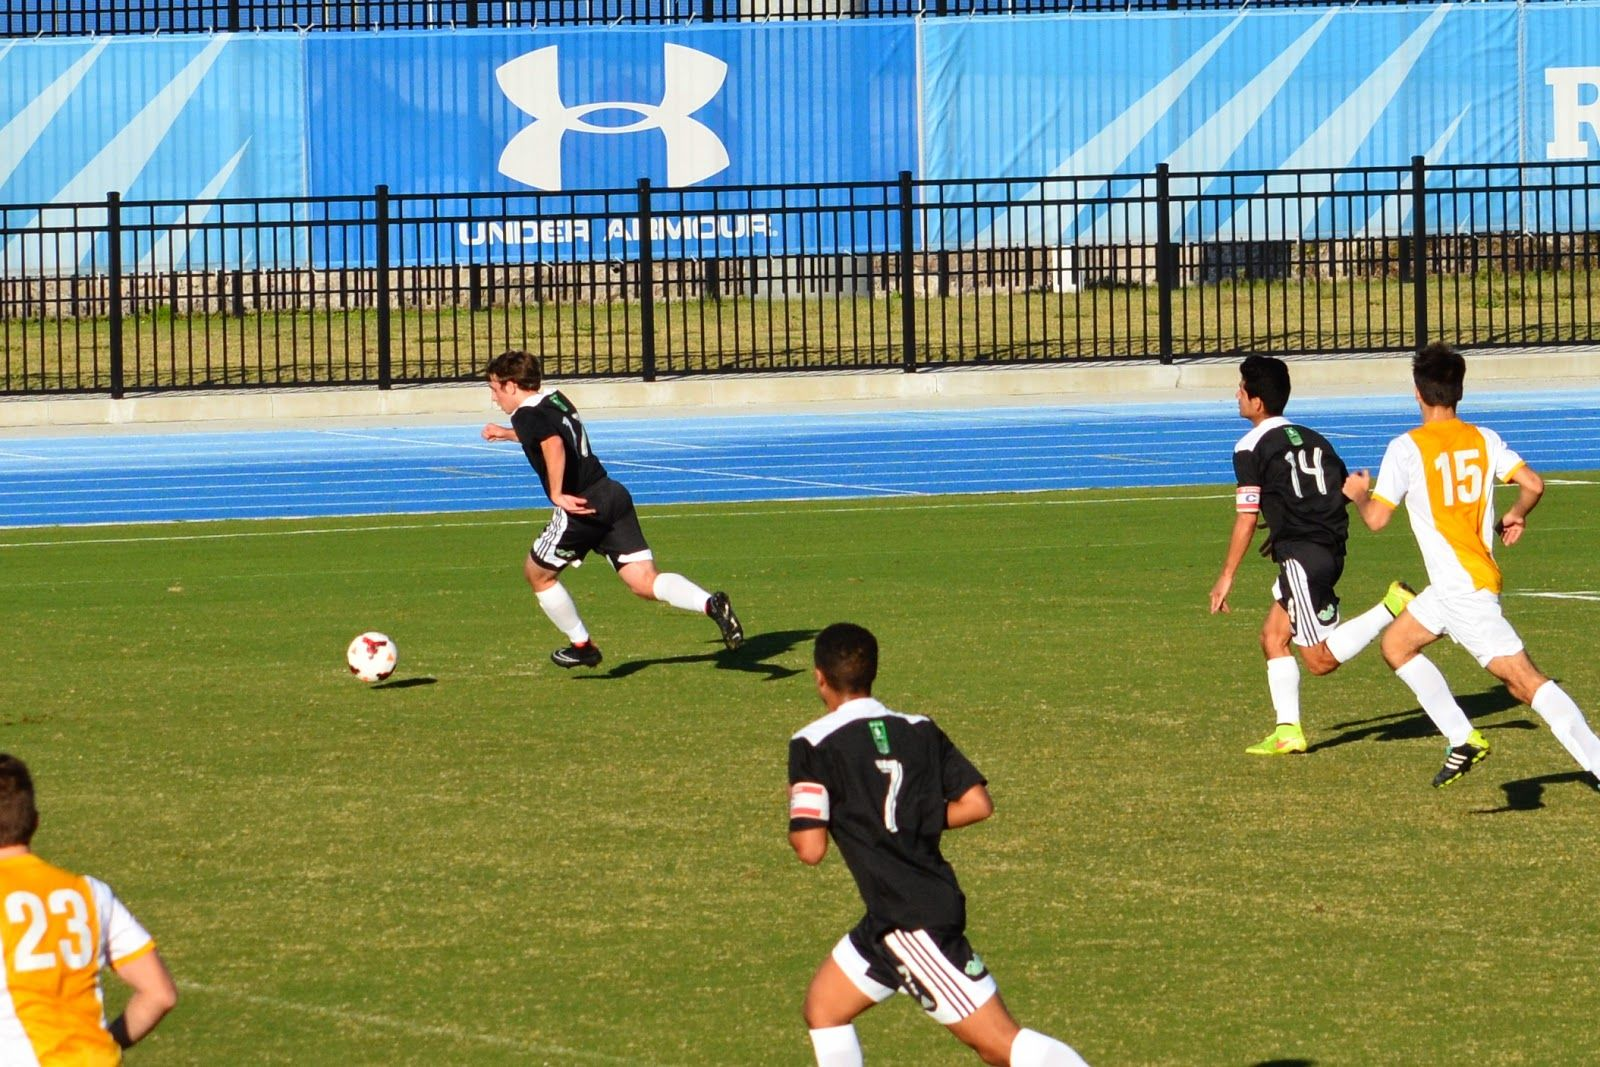 VA Alliance (Team America 96, Black) competing in USL